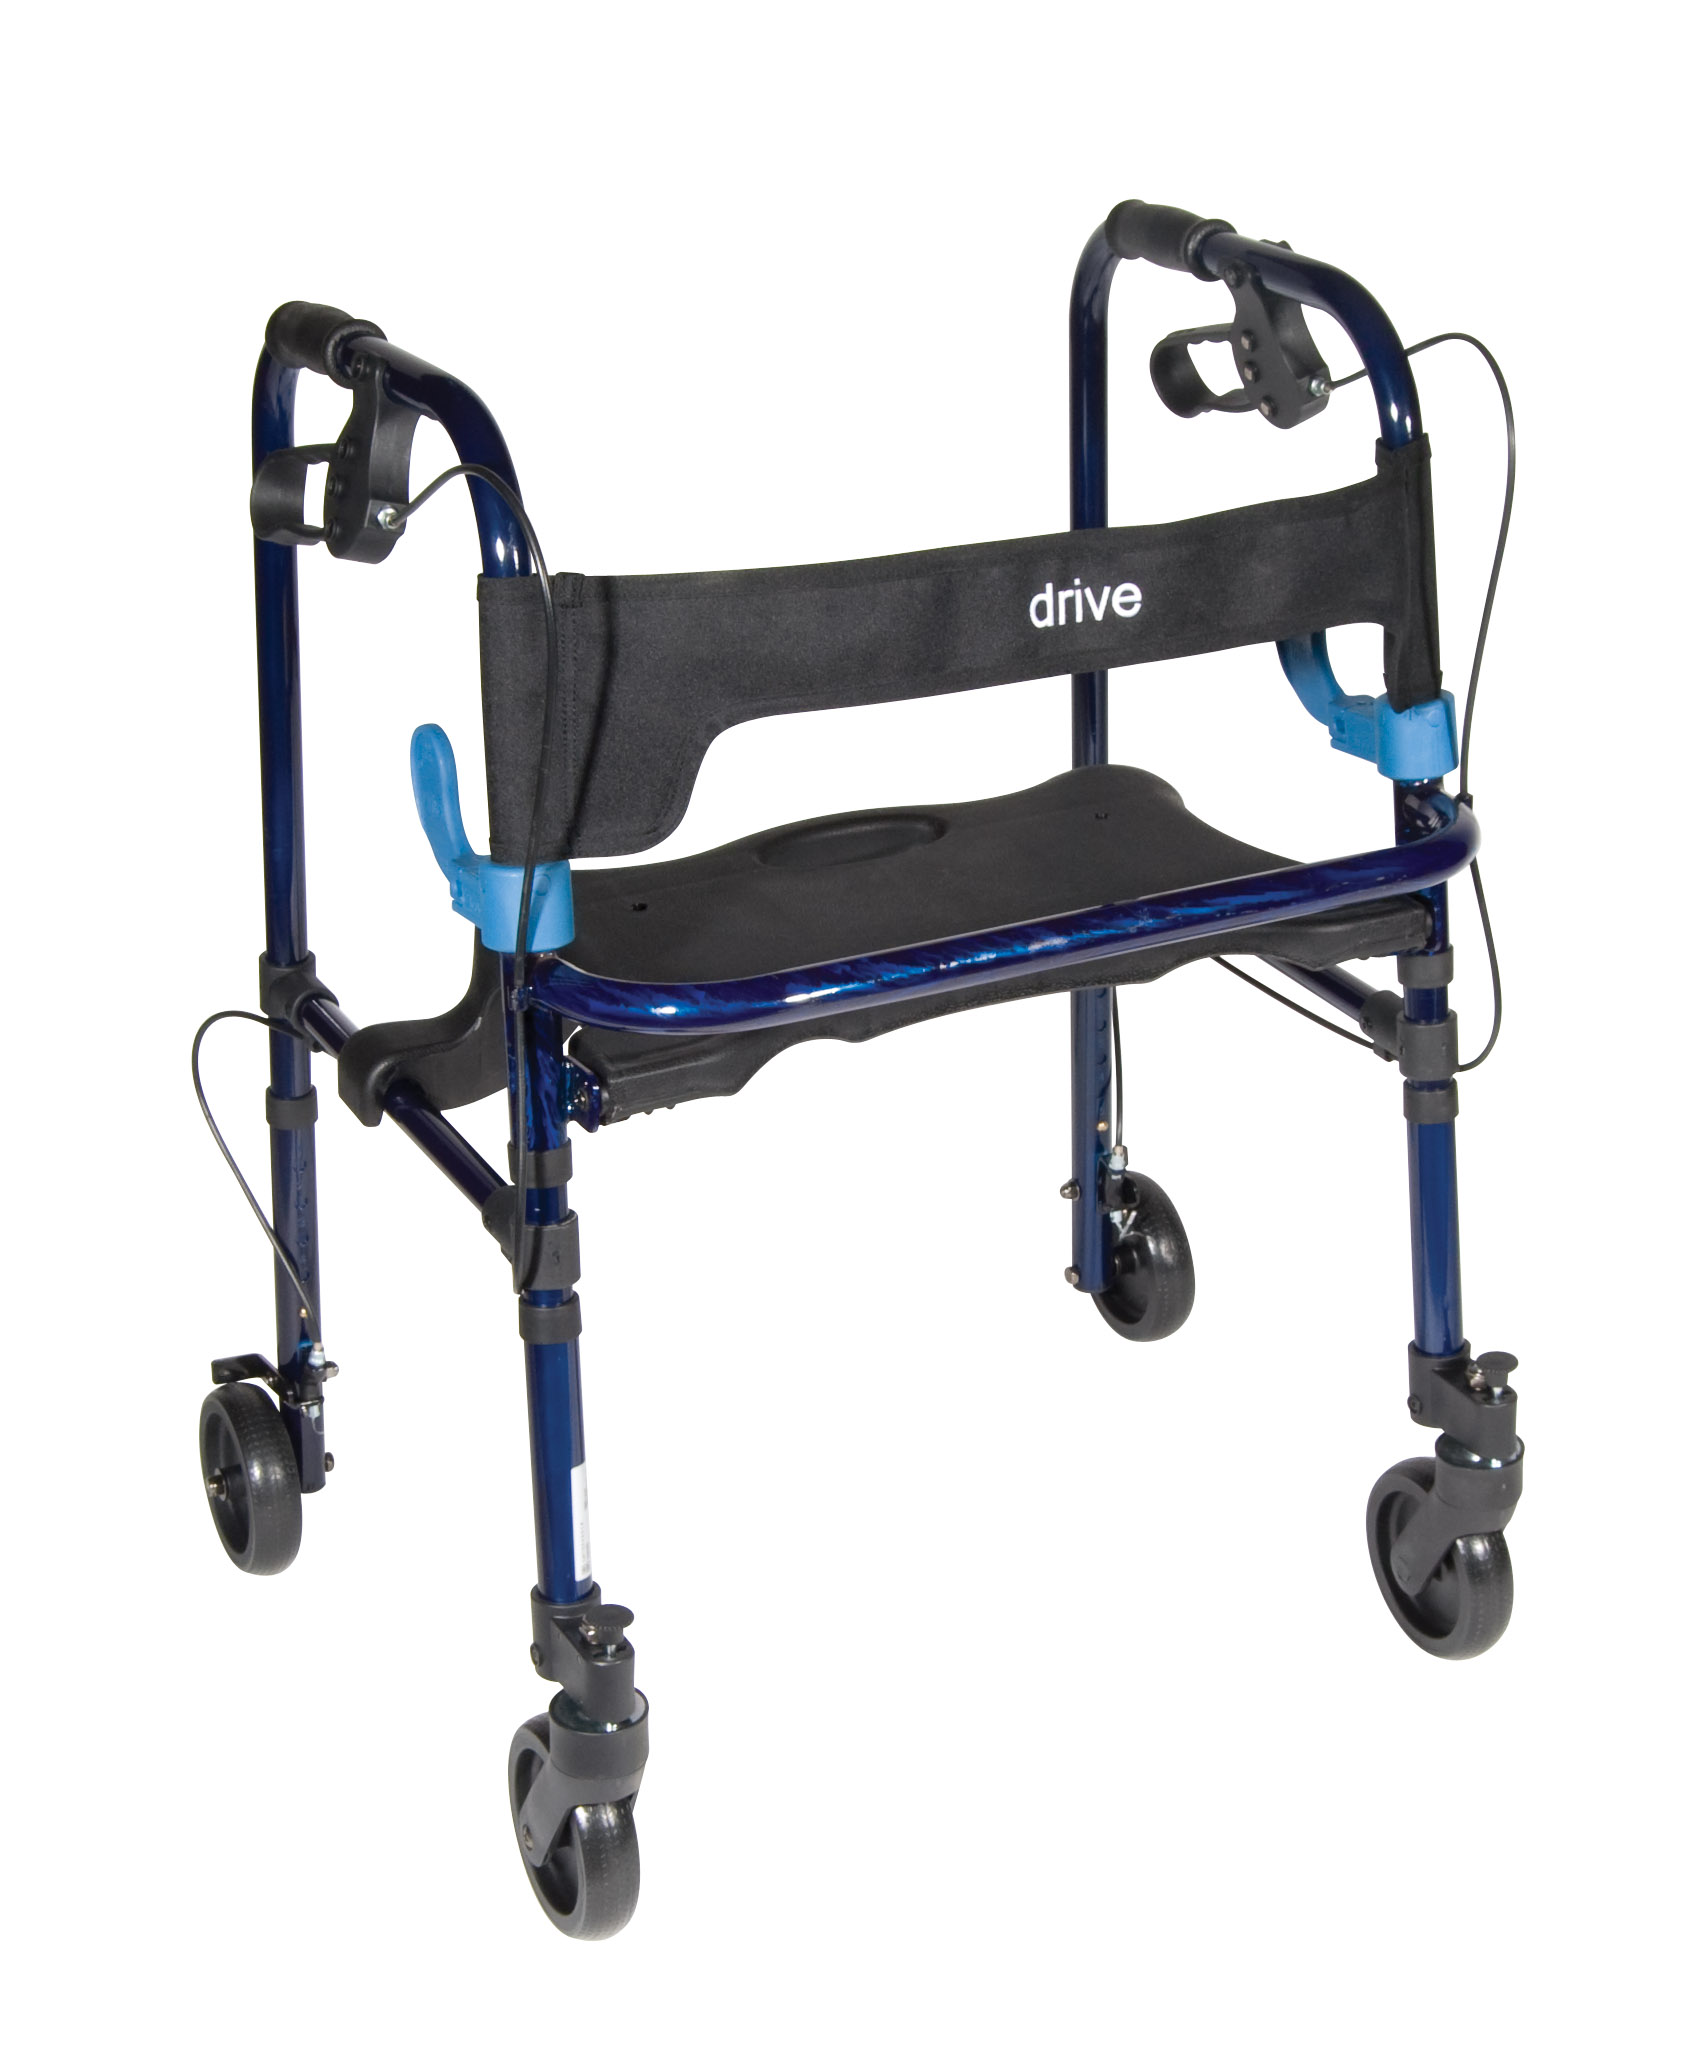 Drive Clever Lite Rollator Walker with 5